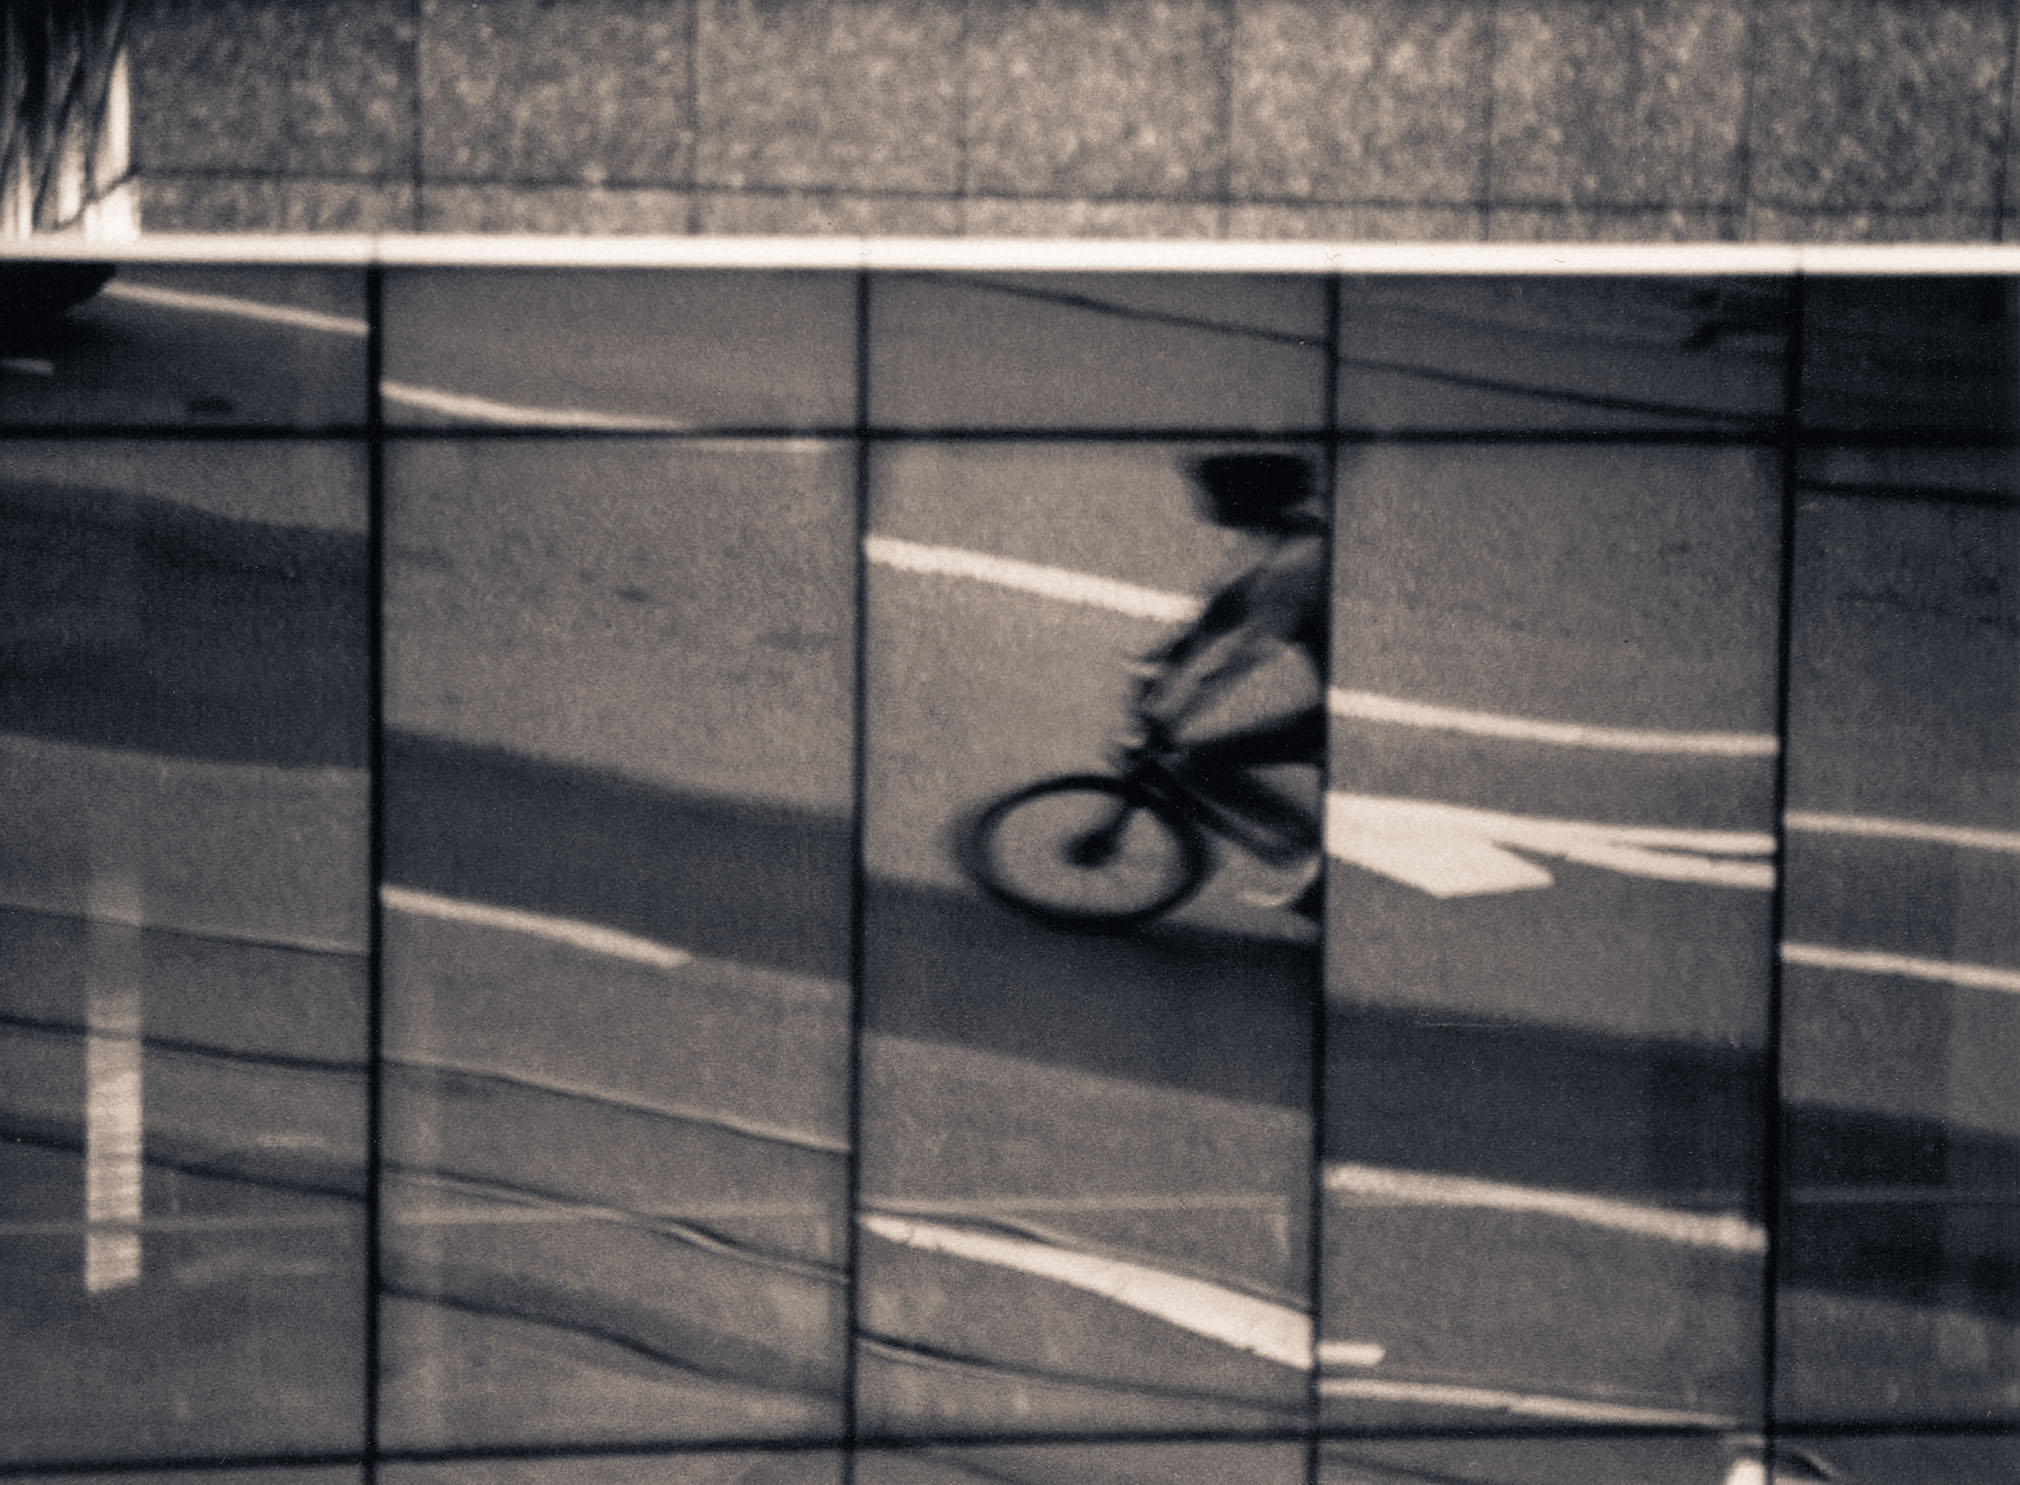 Reflections of a commuter, captured with the Minolta XD7